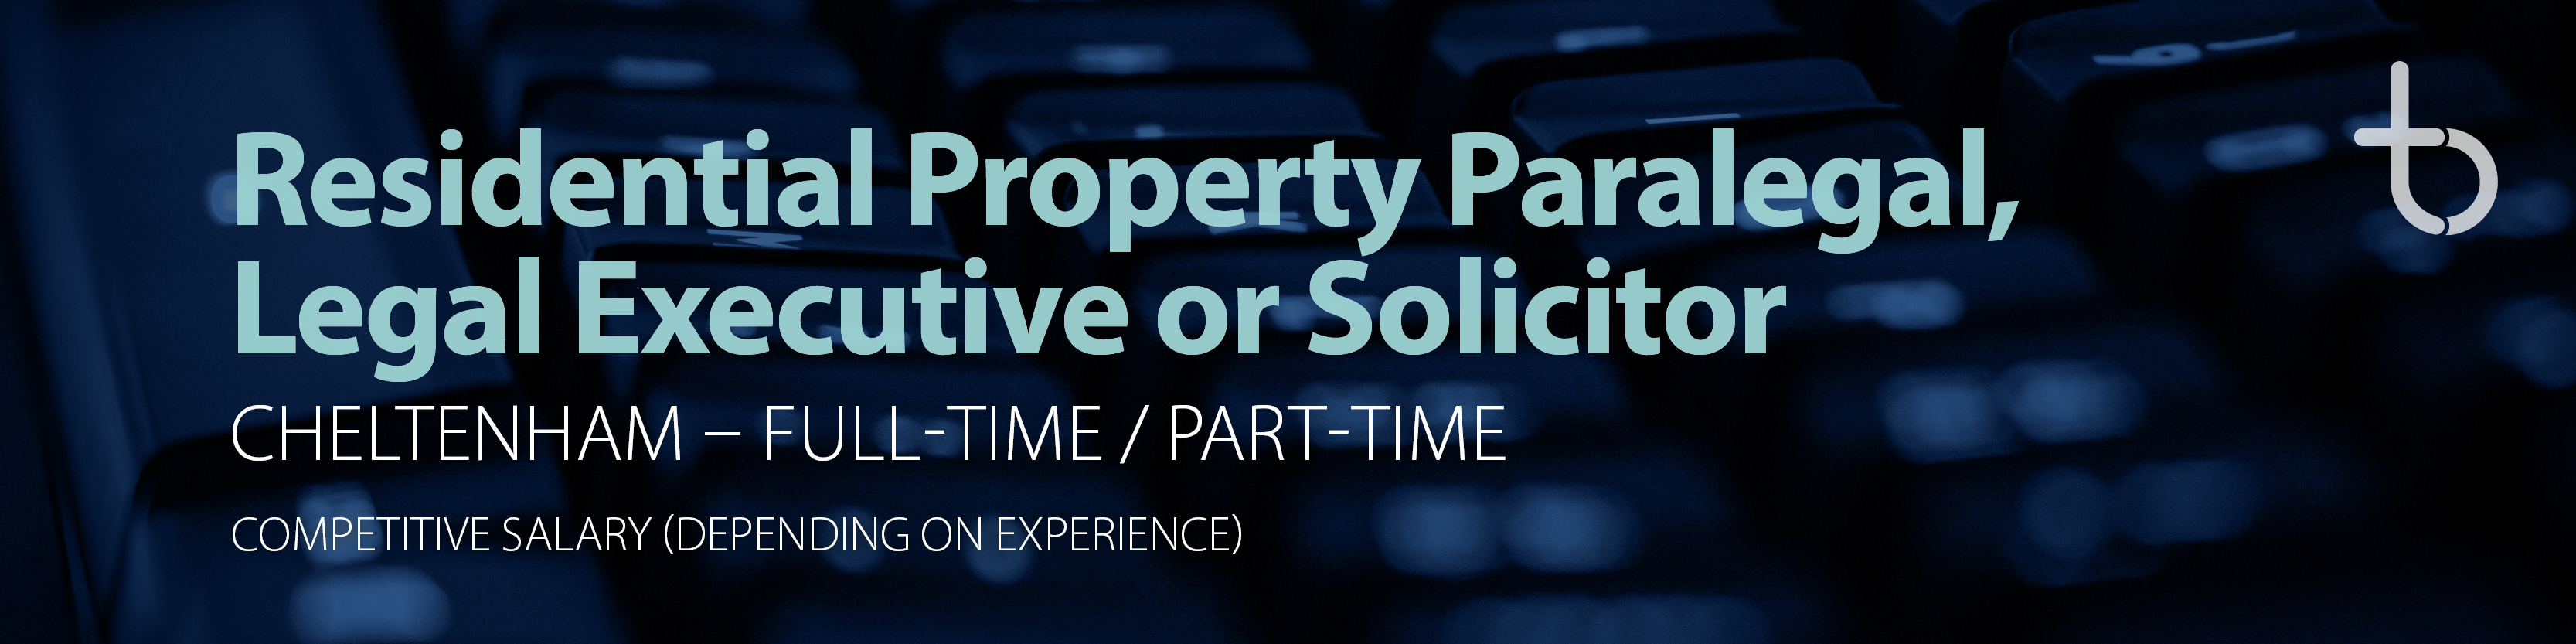 Residential Property Paralegal, Legal Executive or Solicitor